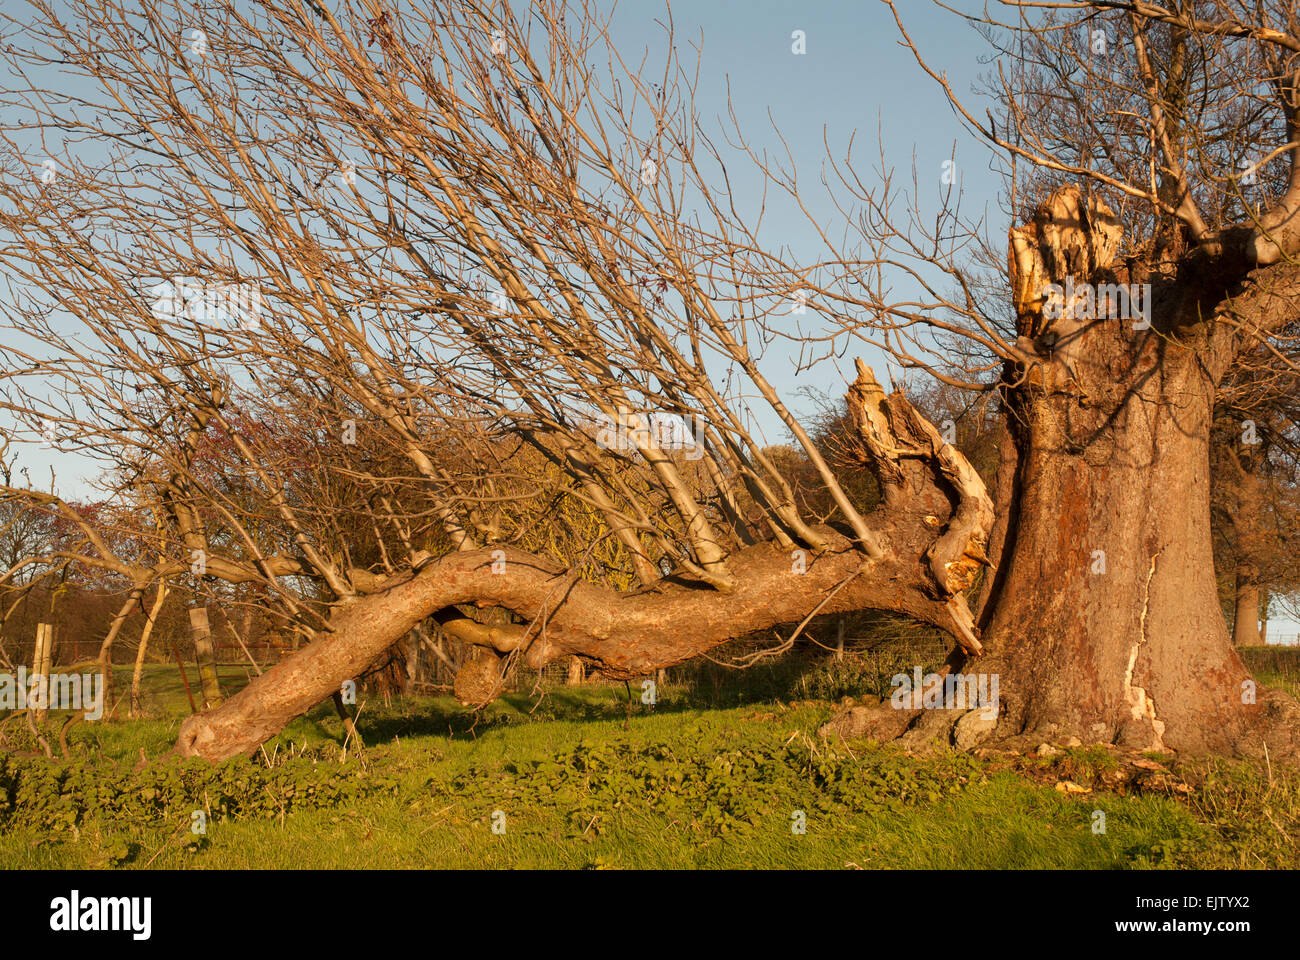 Broken tree branch that looks like a Chinese dragon - Stock Image